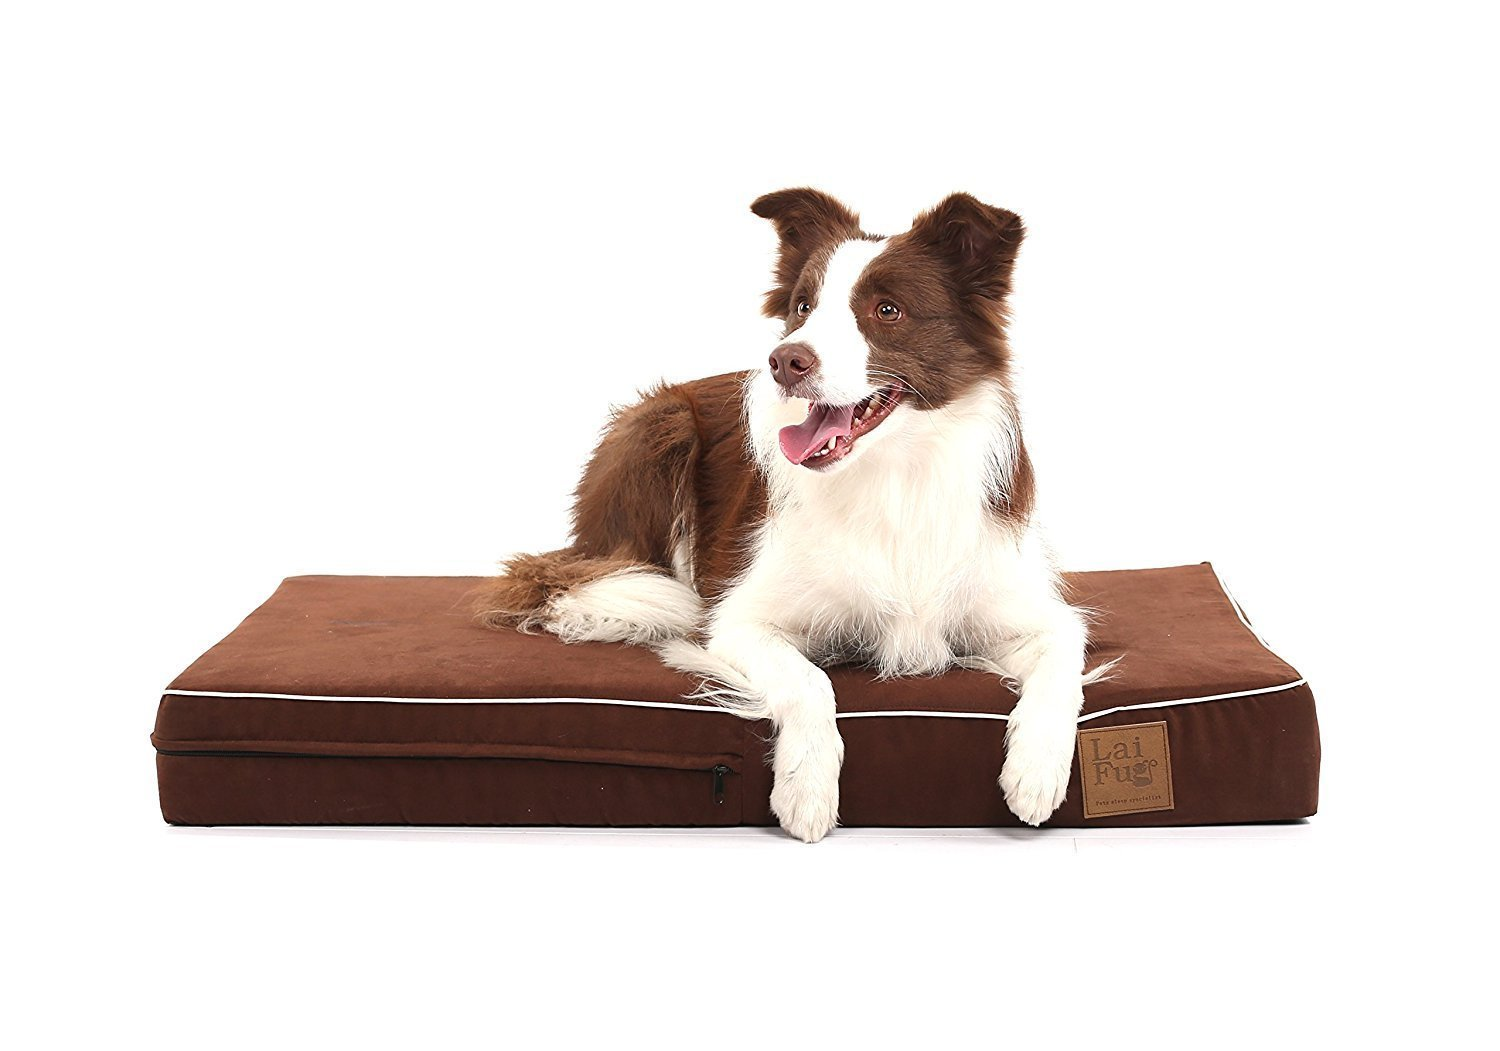 Amazon.com: Laifug Orthopedic Memory Foam Pet/Dog Bed (Medium34x22x4, Chocolate) with Durable Water Proof Liner and Removable Designer Washable Cover: ...